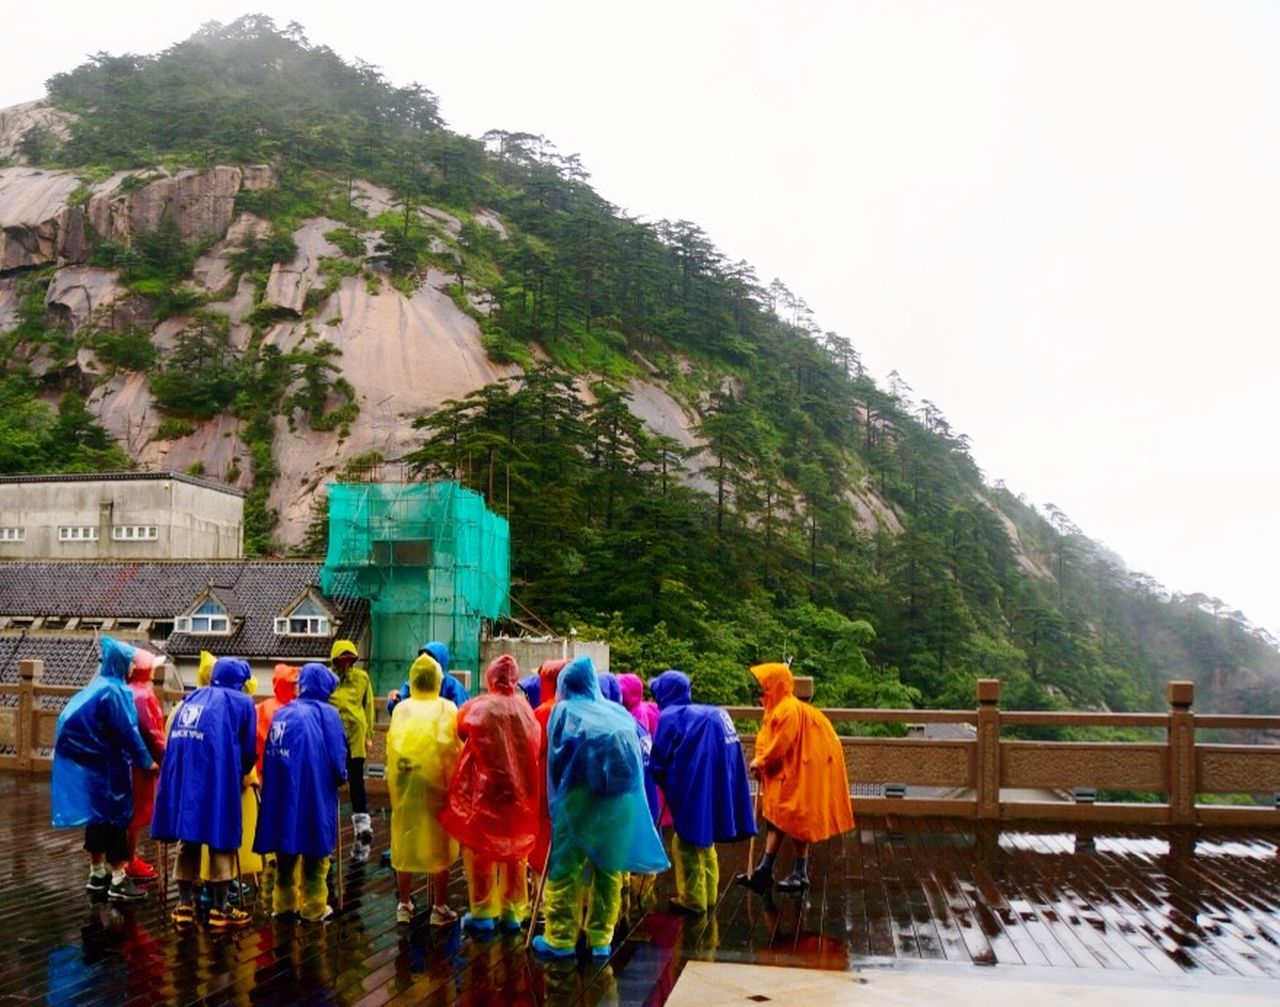 morning gathering under the rain, Haungshan mountain, China Traveling Landscape_photography Streetphotography Natural Rainy Days Mountains Taking Photos The Great Outdoors - 2015 EyeEm Awards